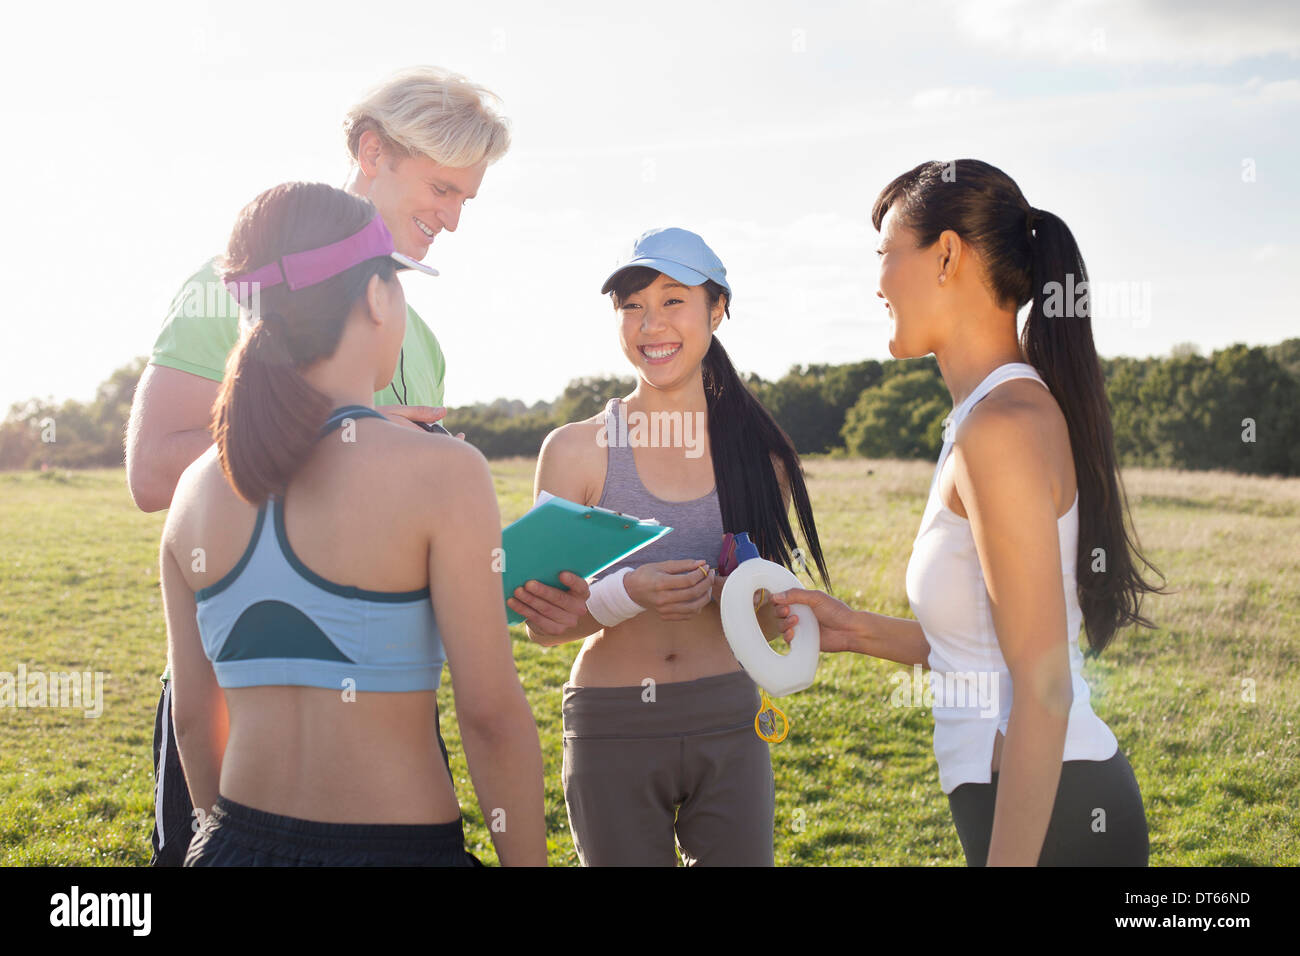 Personal trainer giving instruction to group of clients - Stock Image